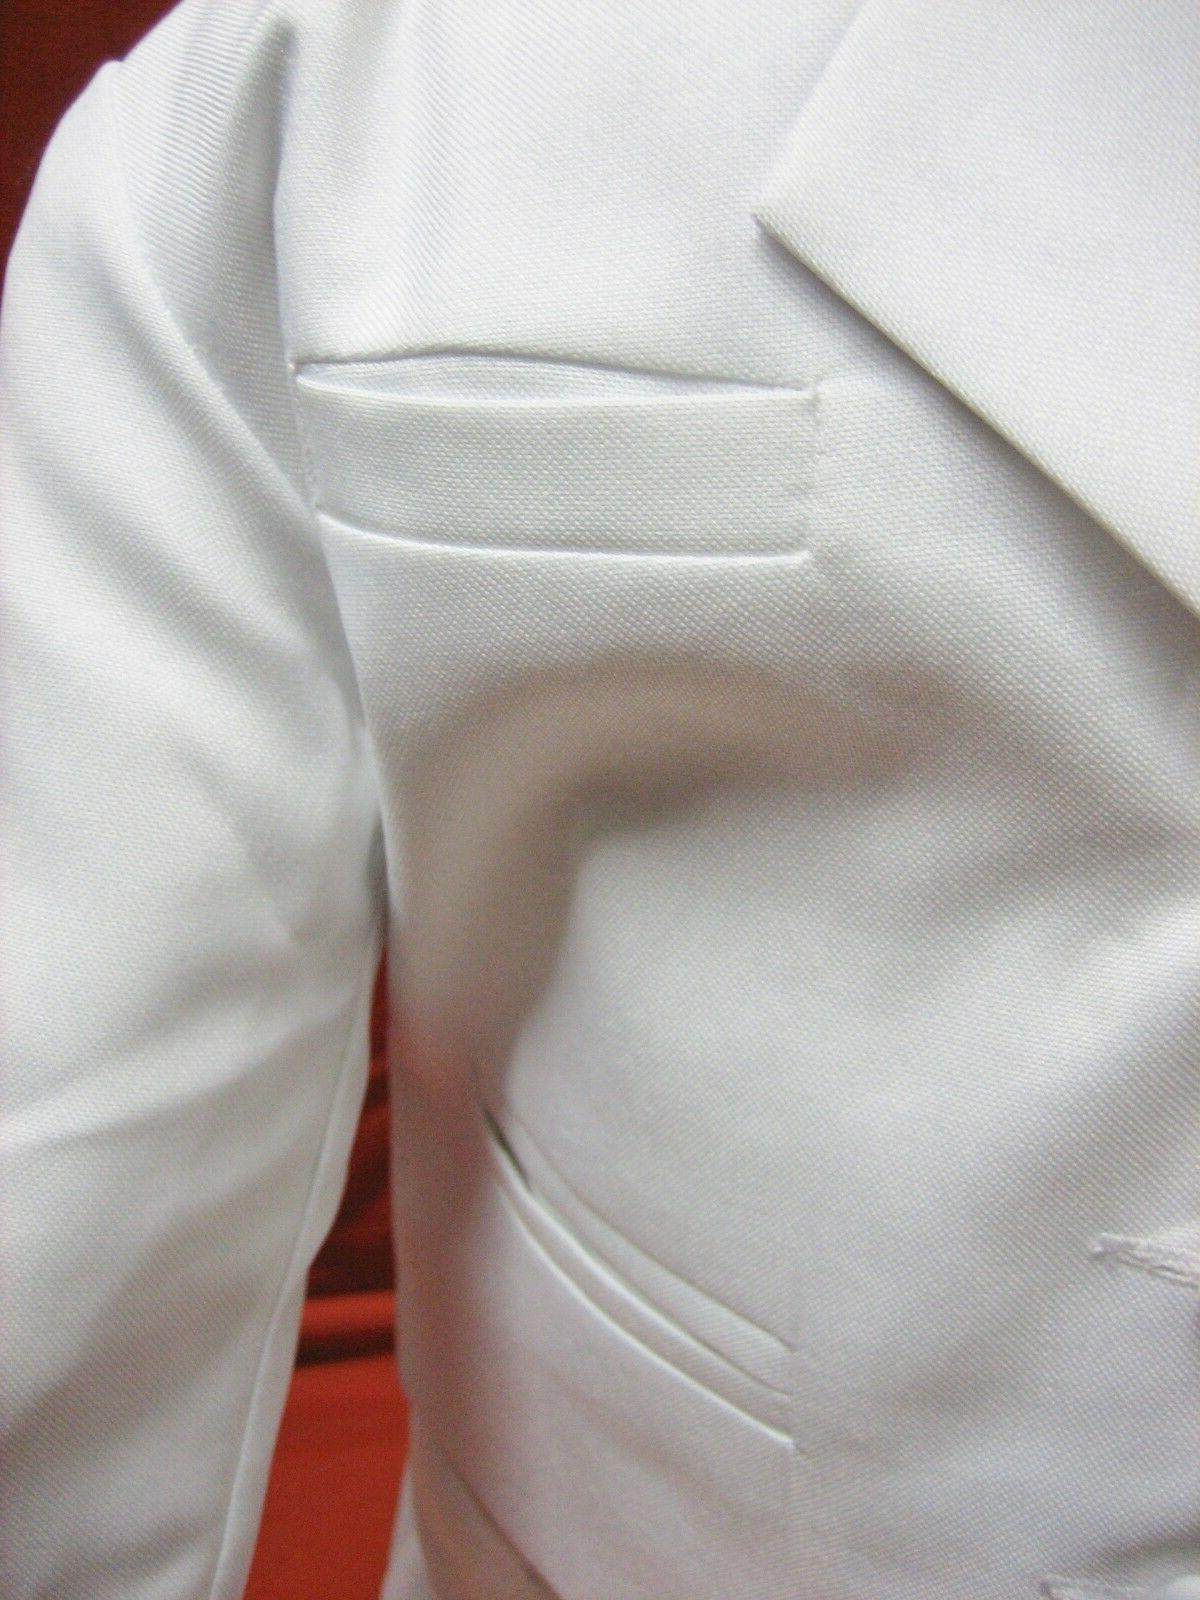 Baby white Suit/Wedding/Tie 5 Outfit/Sizes:XS-4T